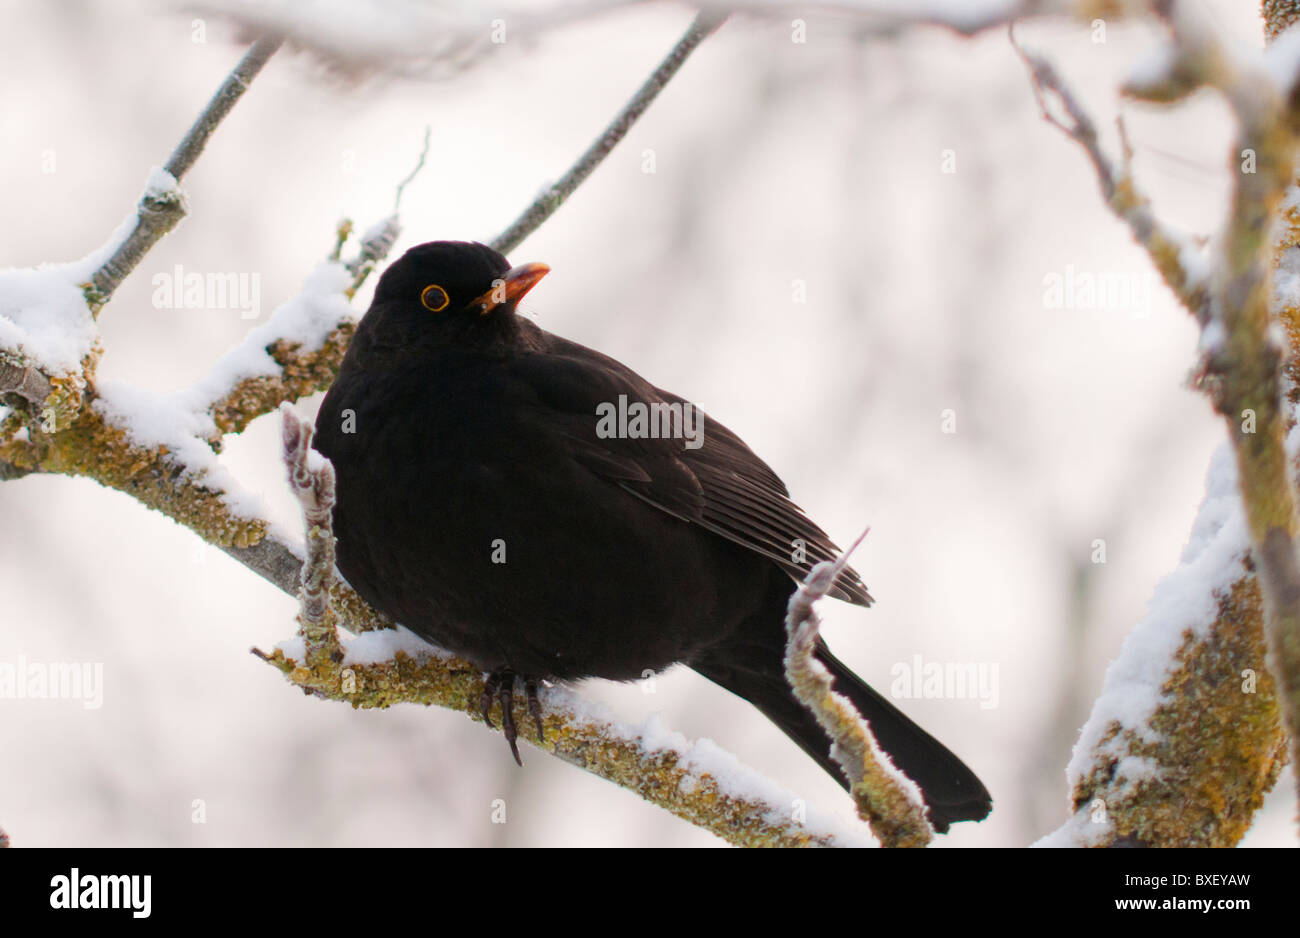 Male Blackbird perched on snow covered branch - Stock Image